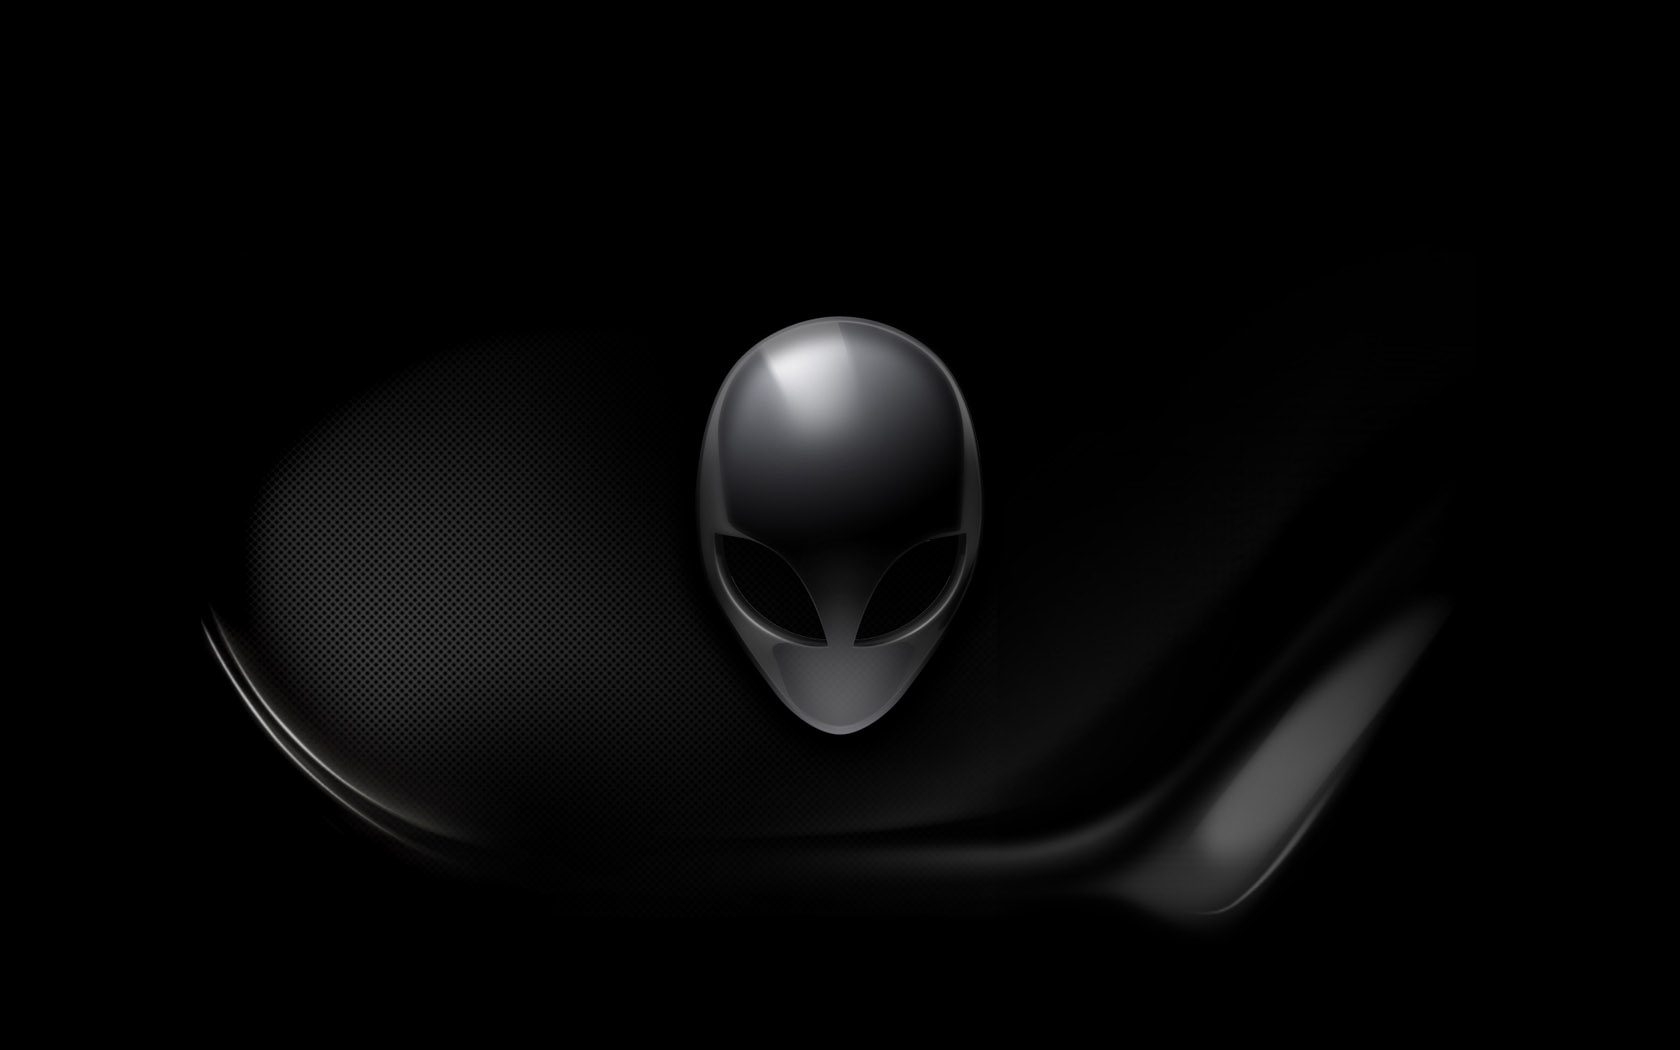 47 108 Alienware Wallpaper On Wallpapersafari